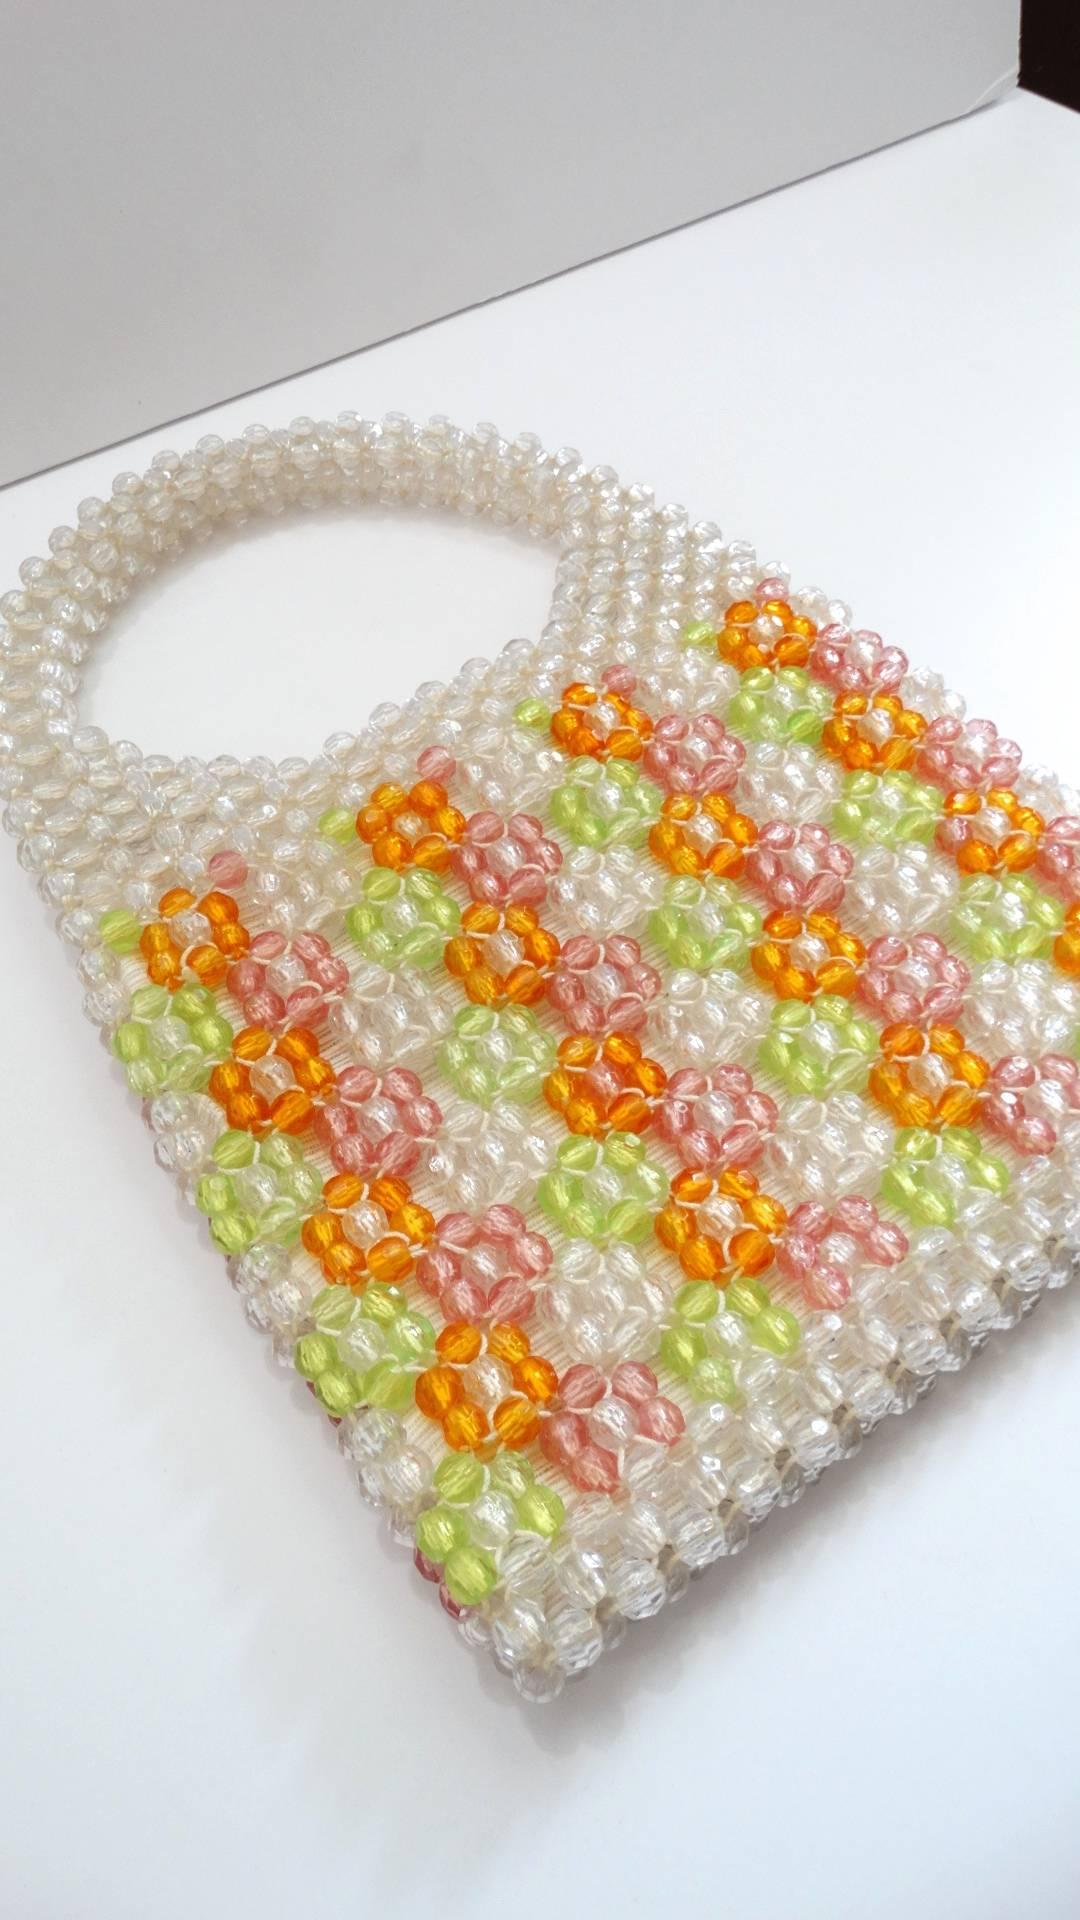 1stdibs Barbara Lee Multi-colored Beaded Bag, 1960s